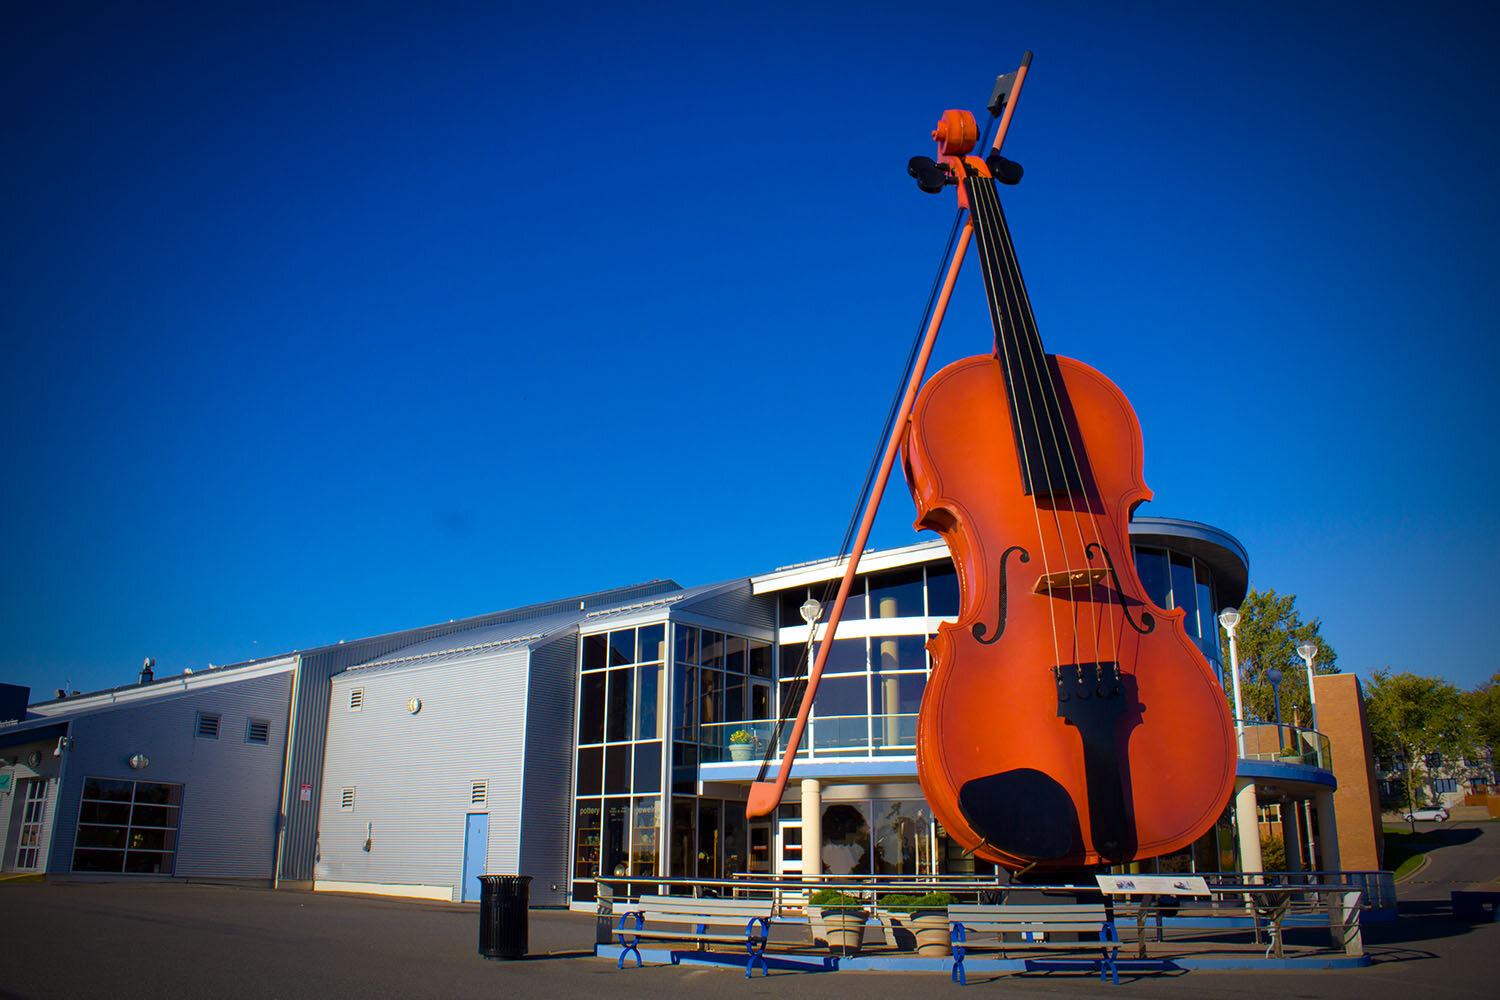 Copy of The Big Fiddle, Sydney, NS - Oct 16